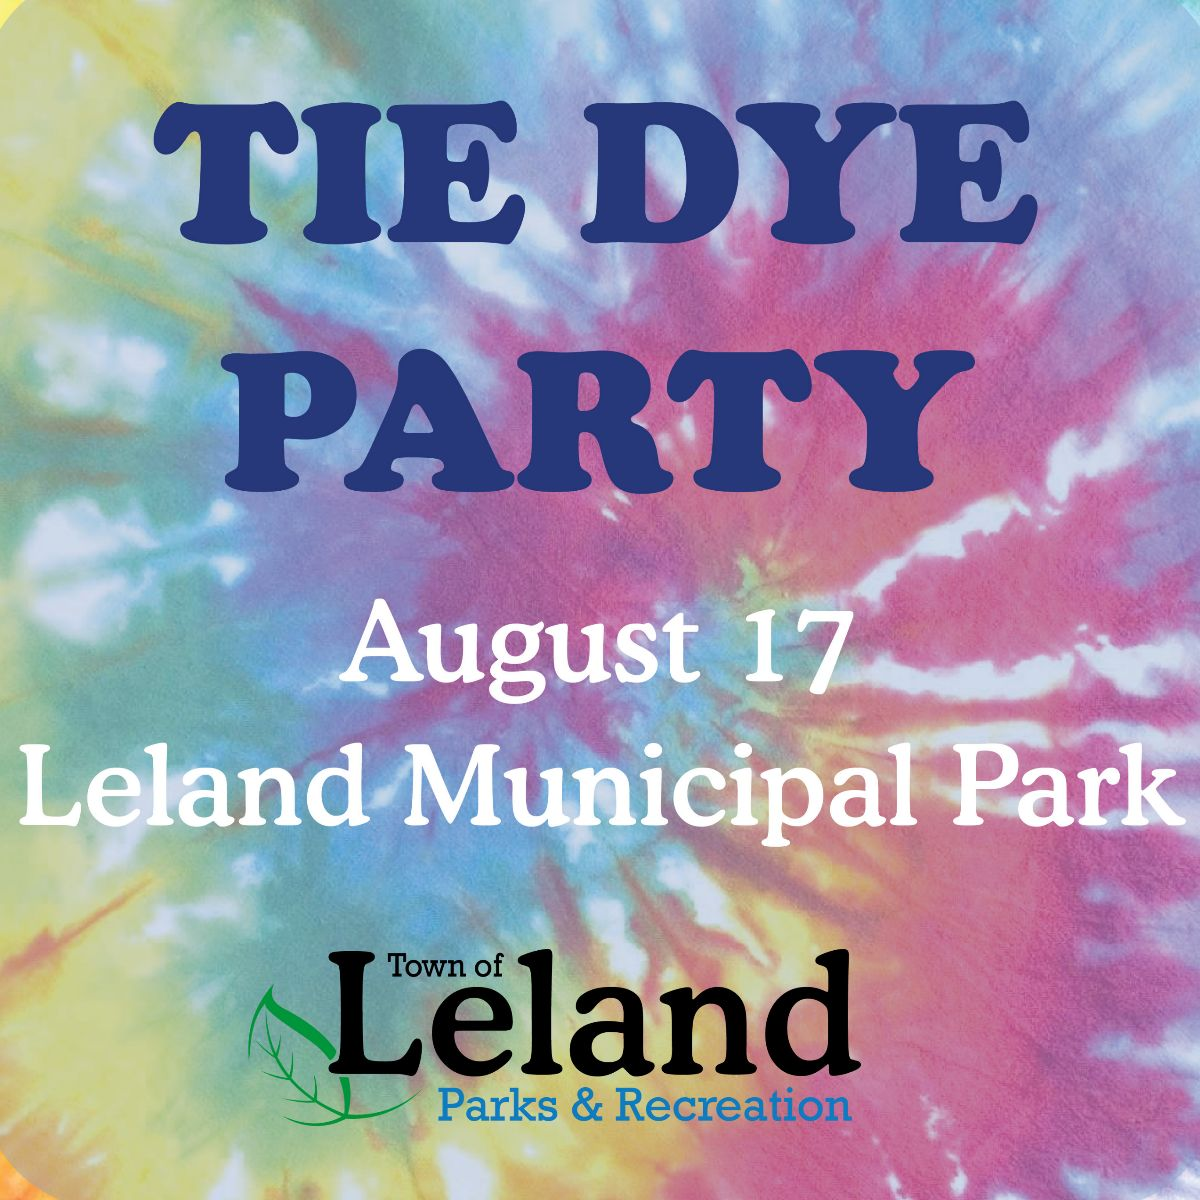 Tie Dye Party flyer with event details and tie dye background